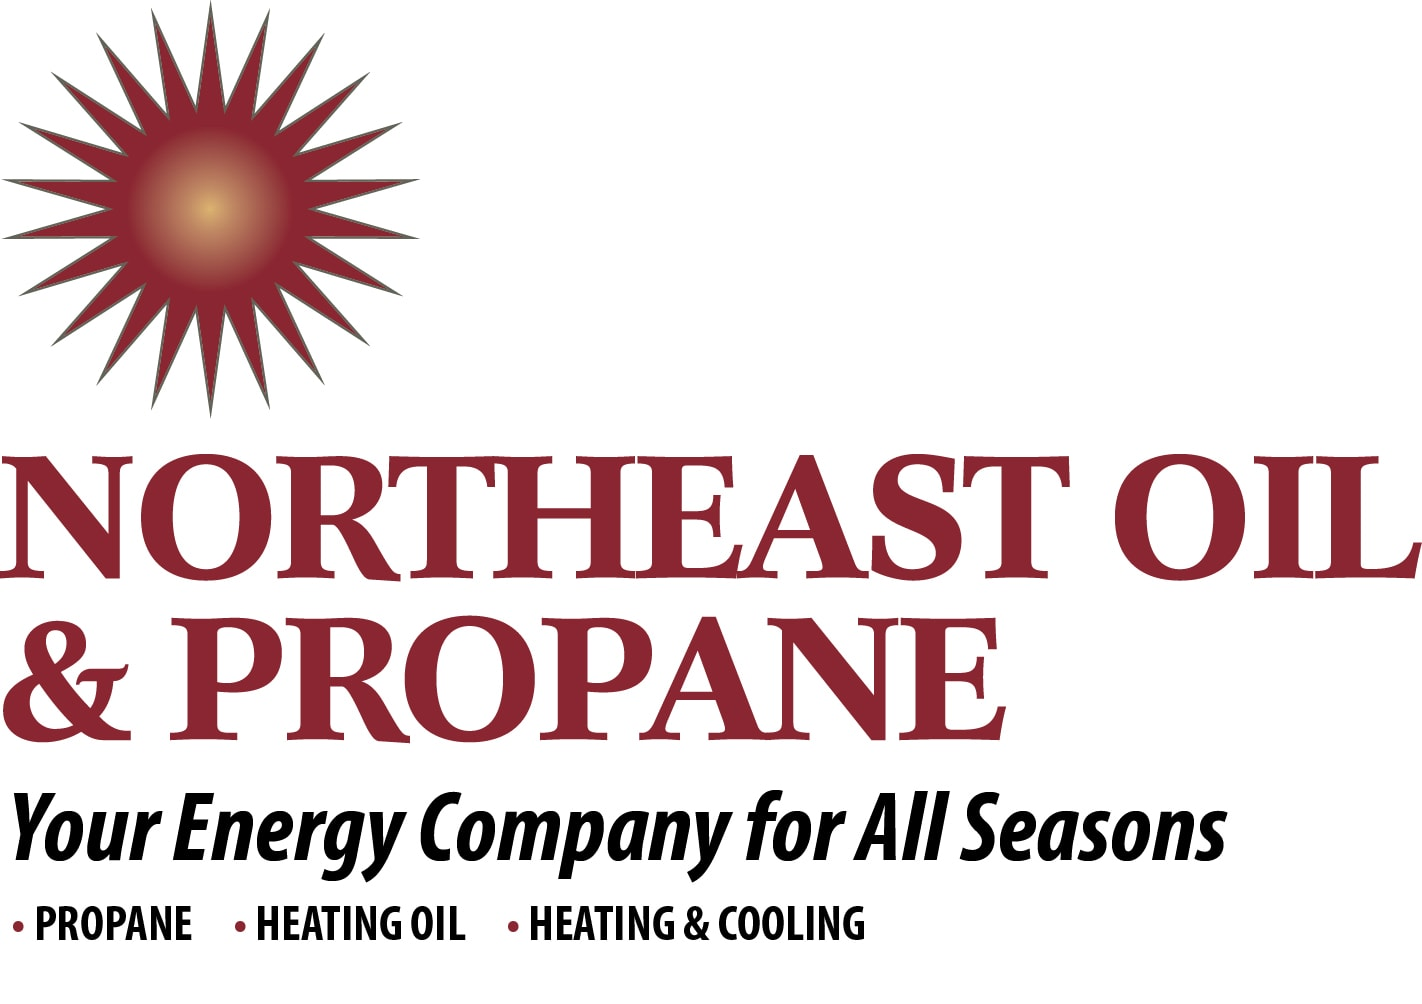 Northeast Oil & Propane